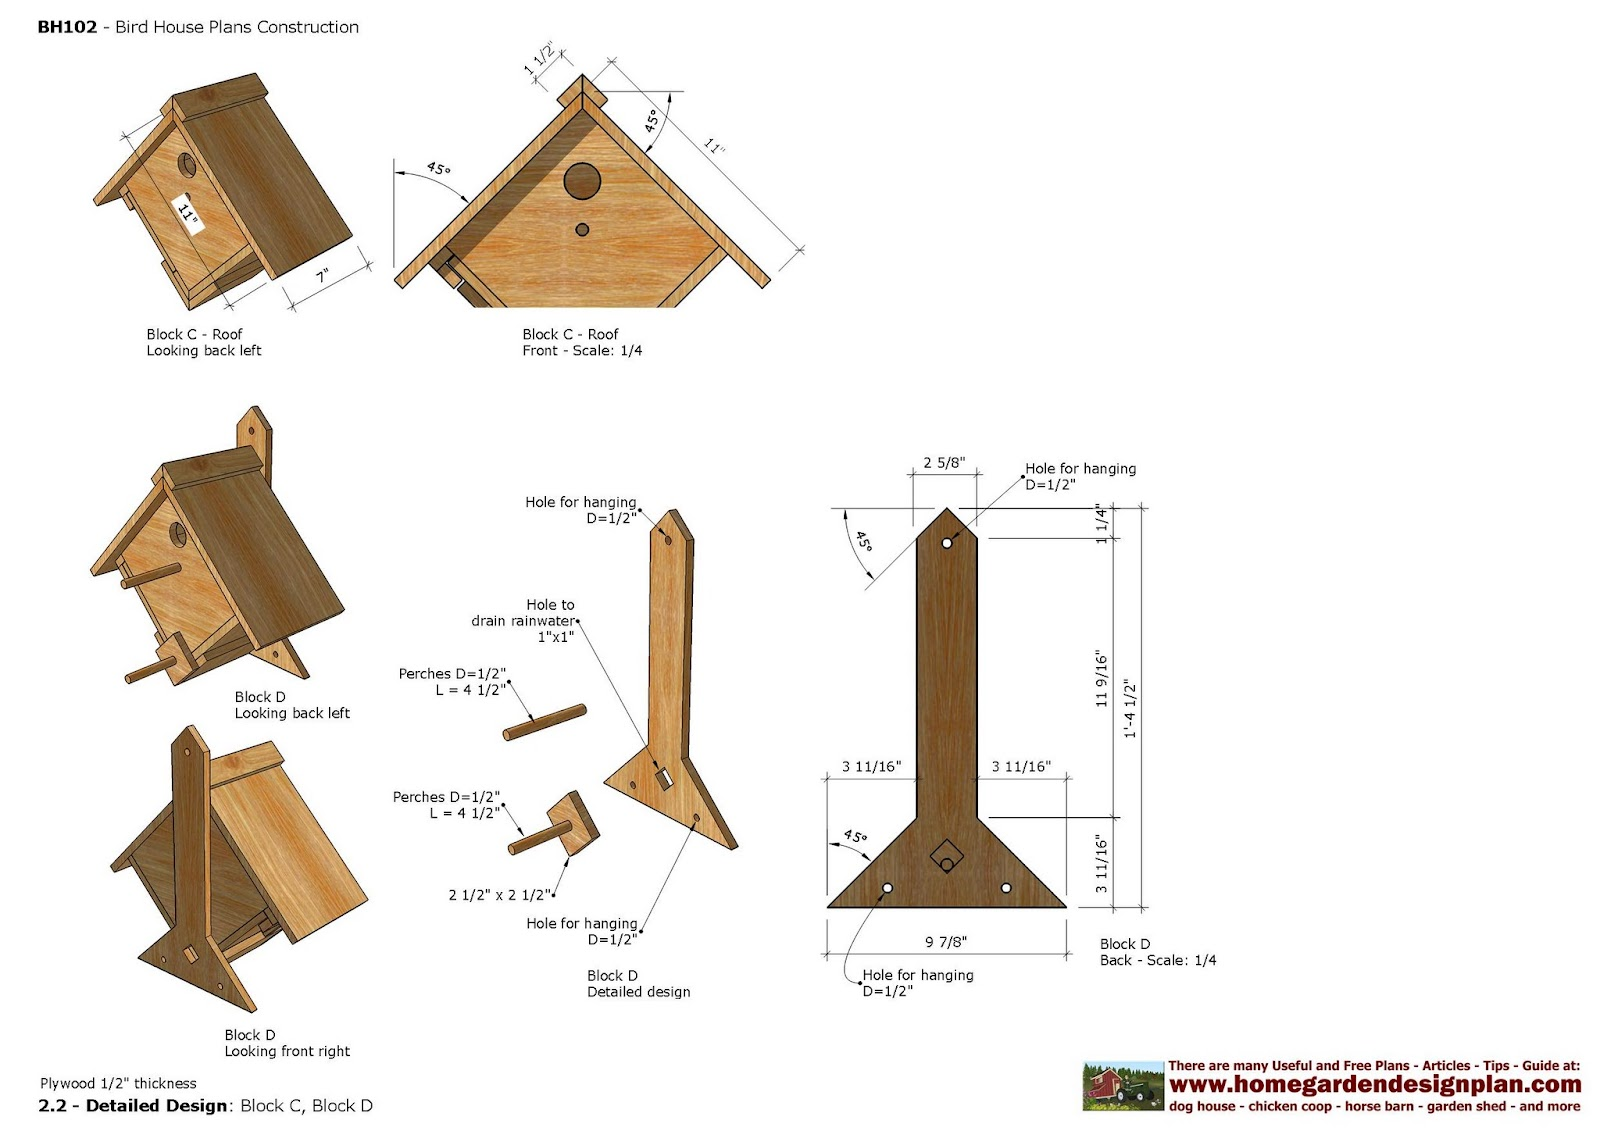 Home garden plans bh bird house plans construction for House construction plans